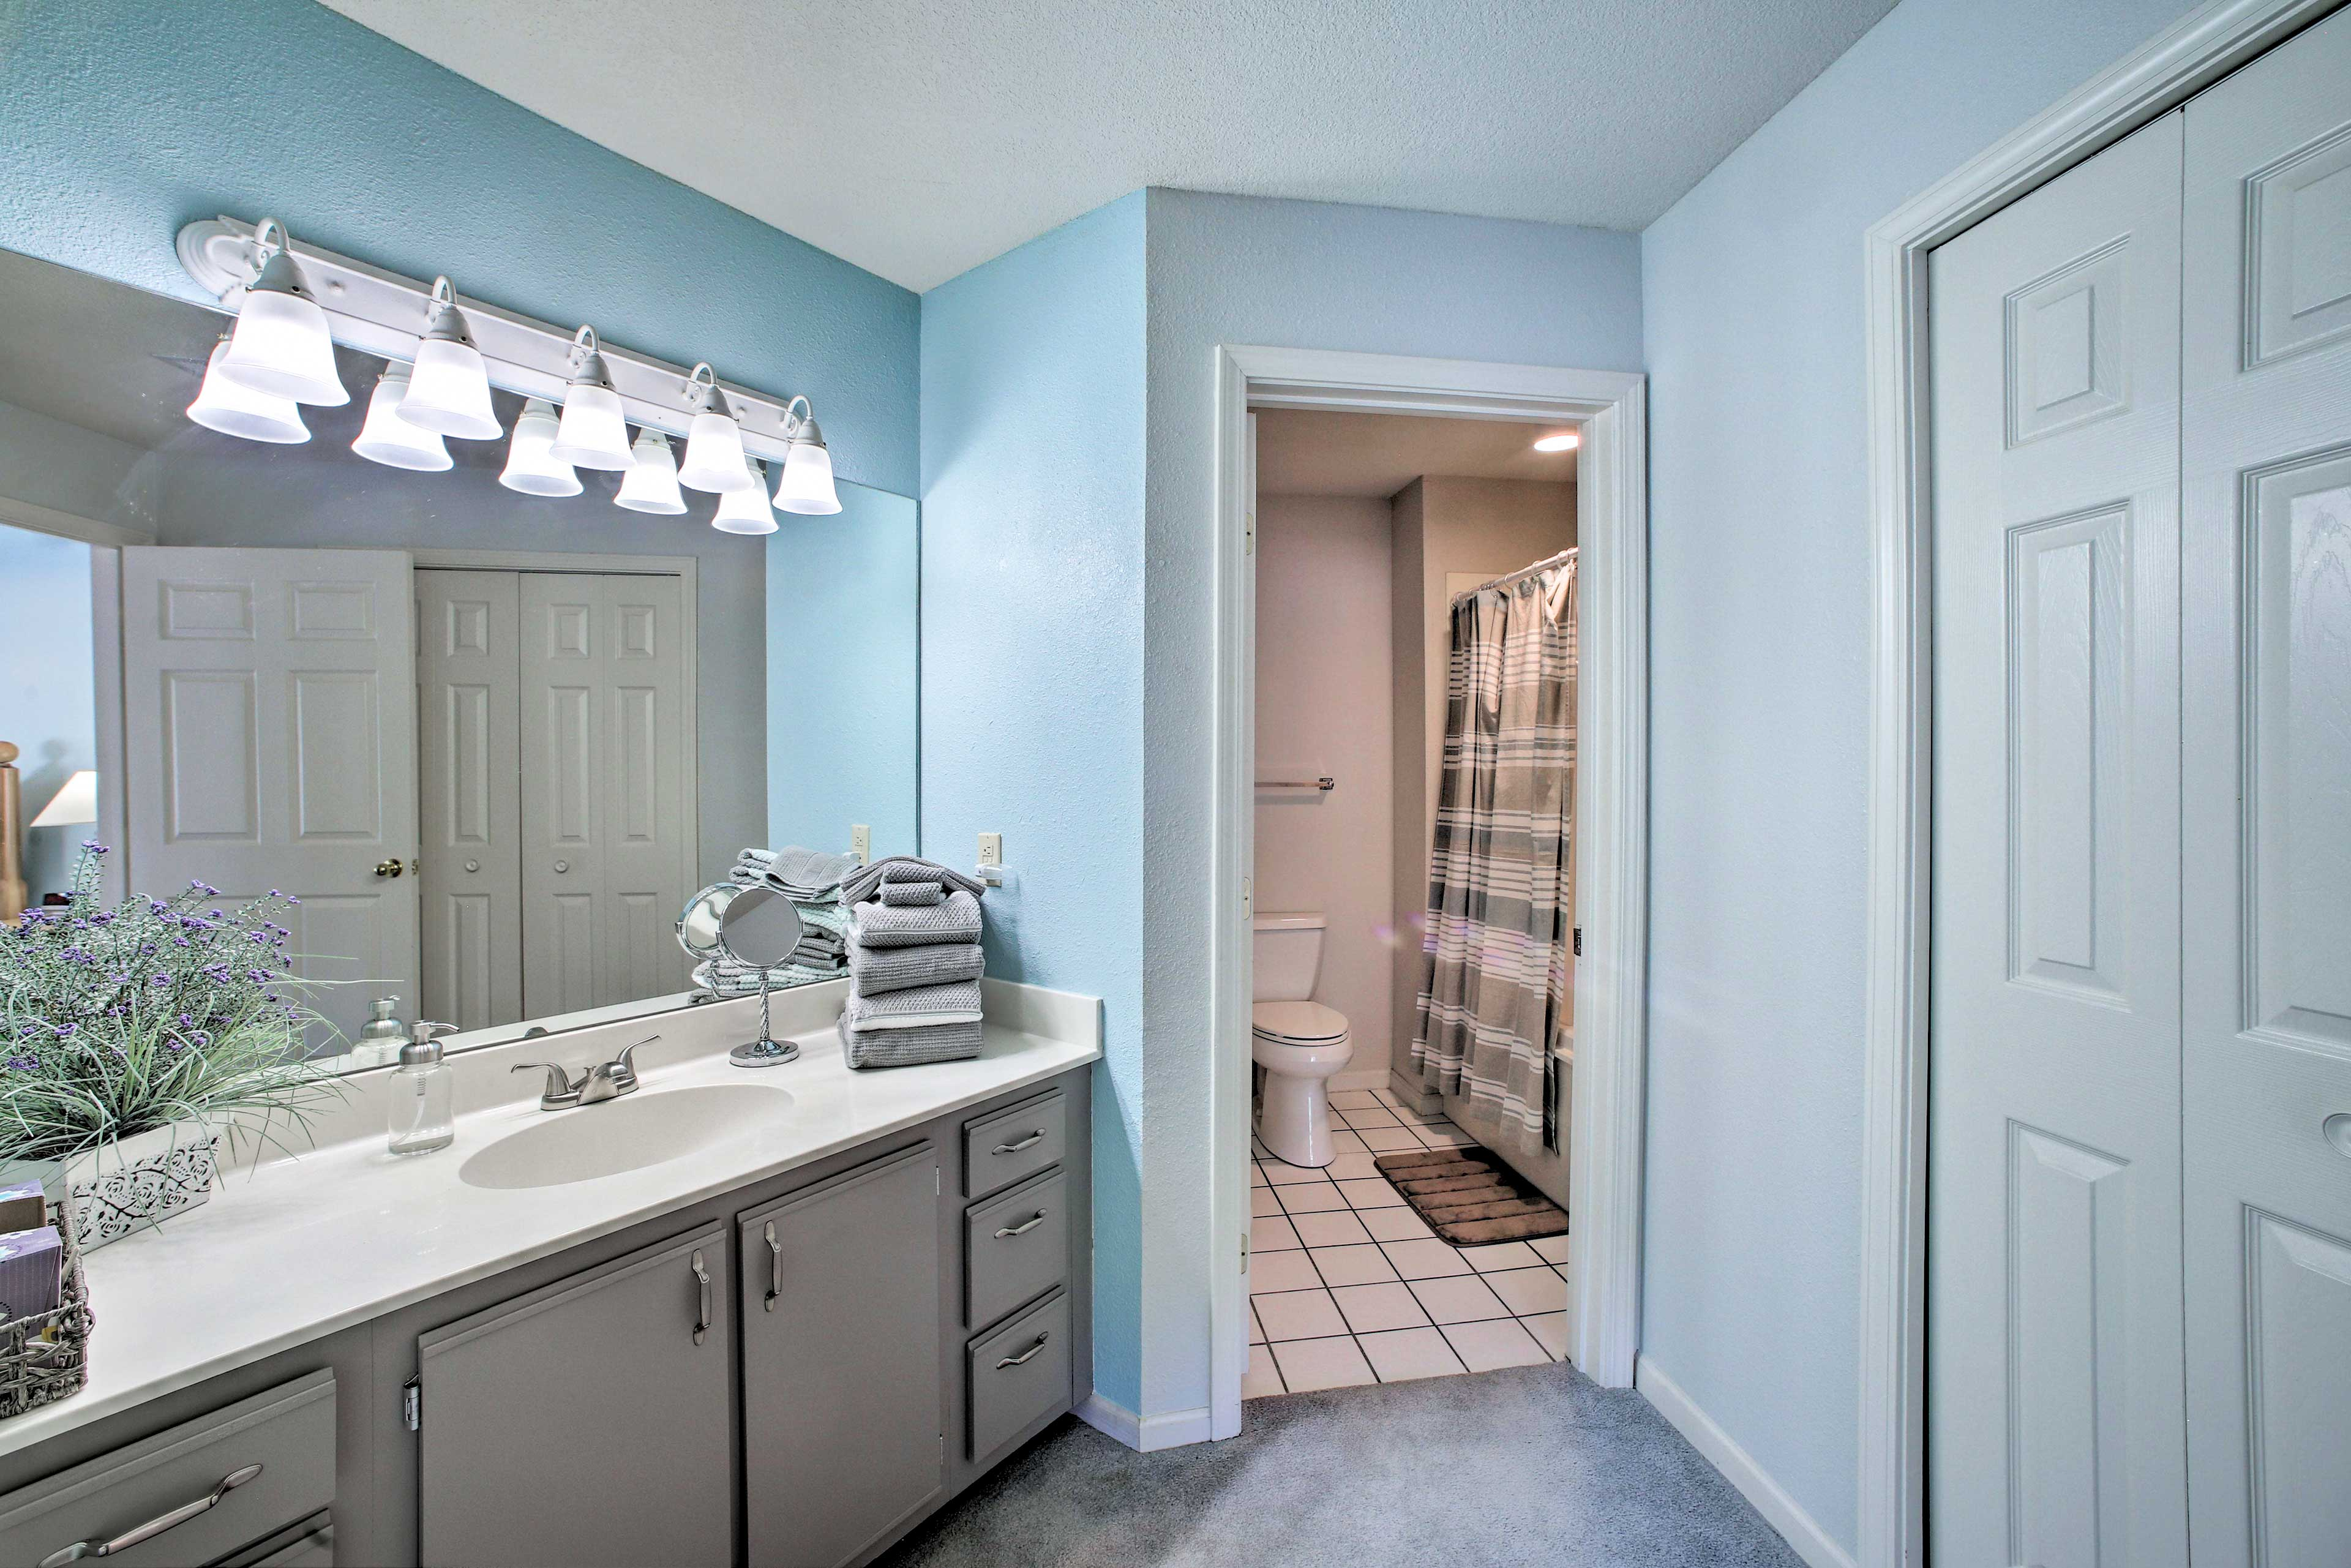 Freshen up in this full bathroom.